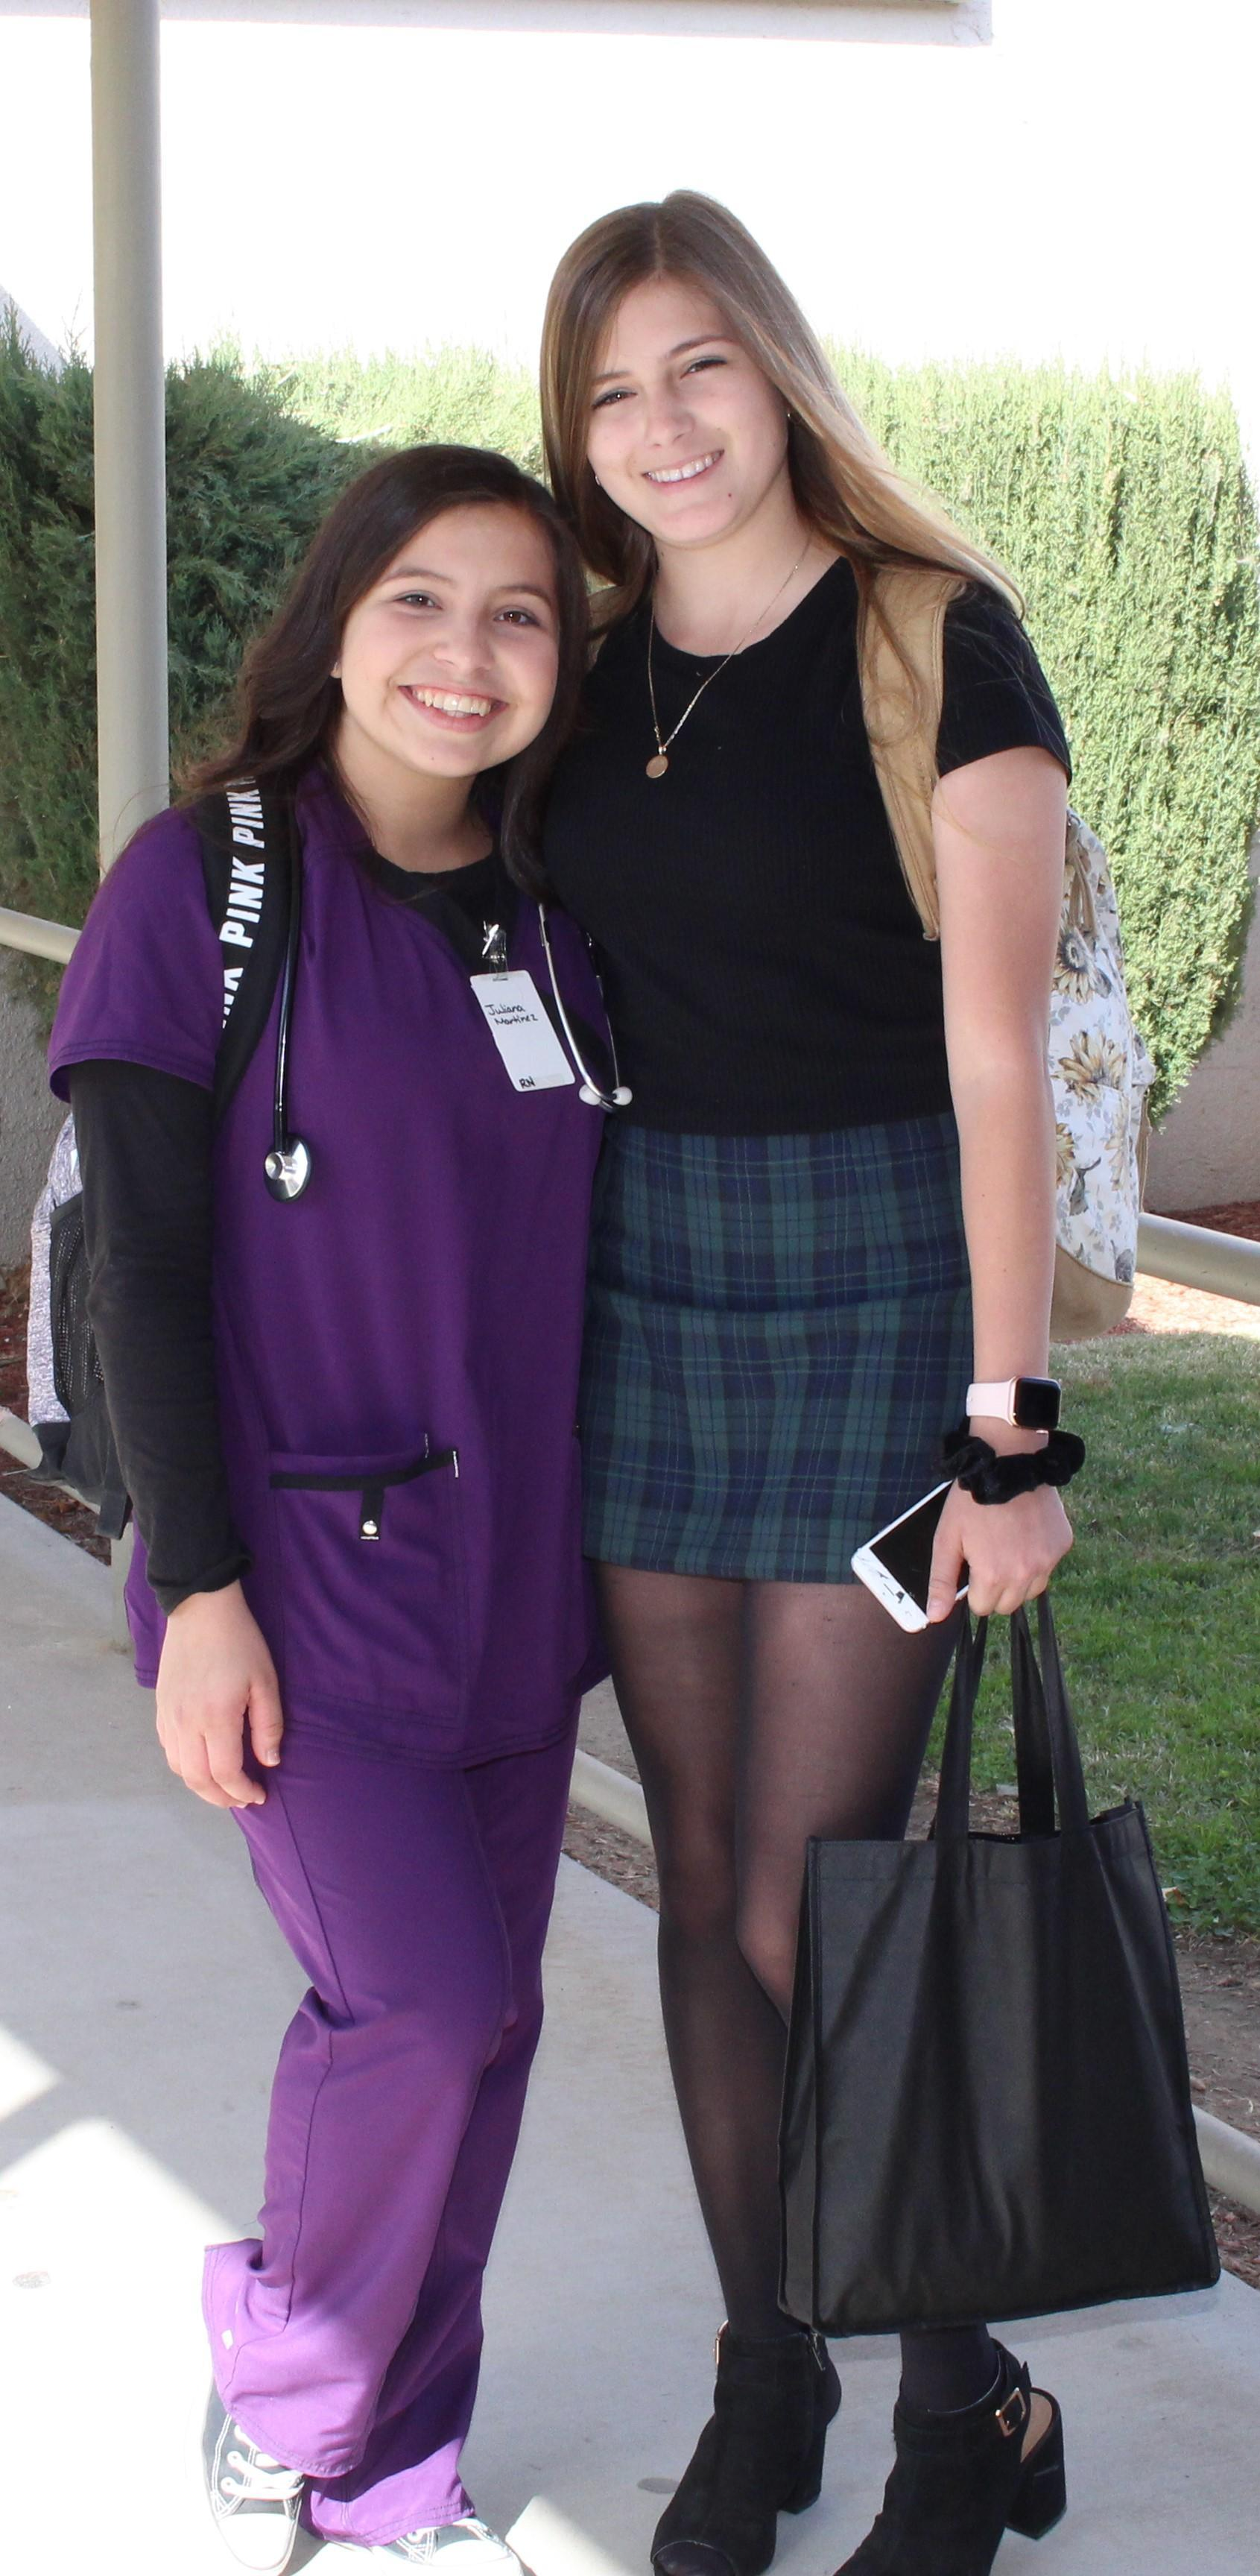 Juliana Martinez dressed as a doctor with Victoria Jimenez as Rachel Green